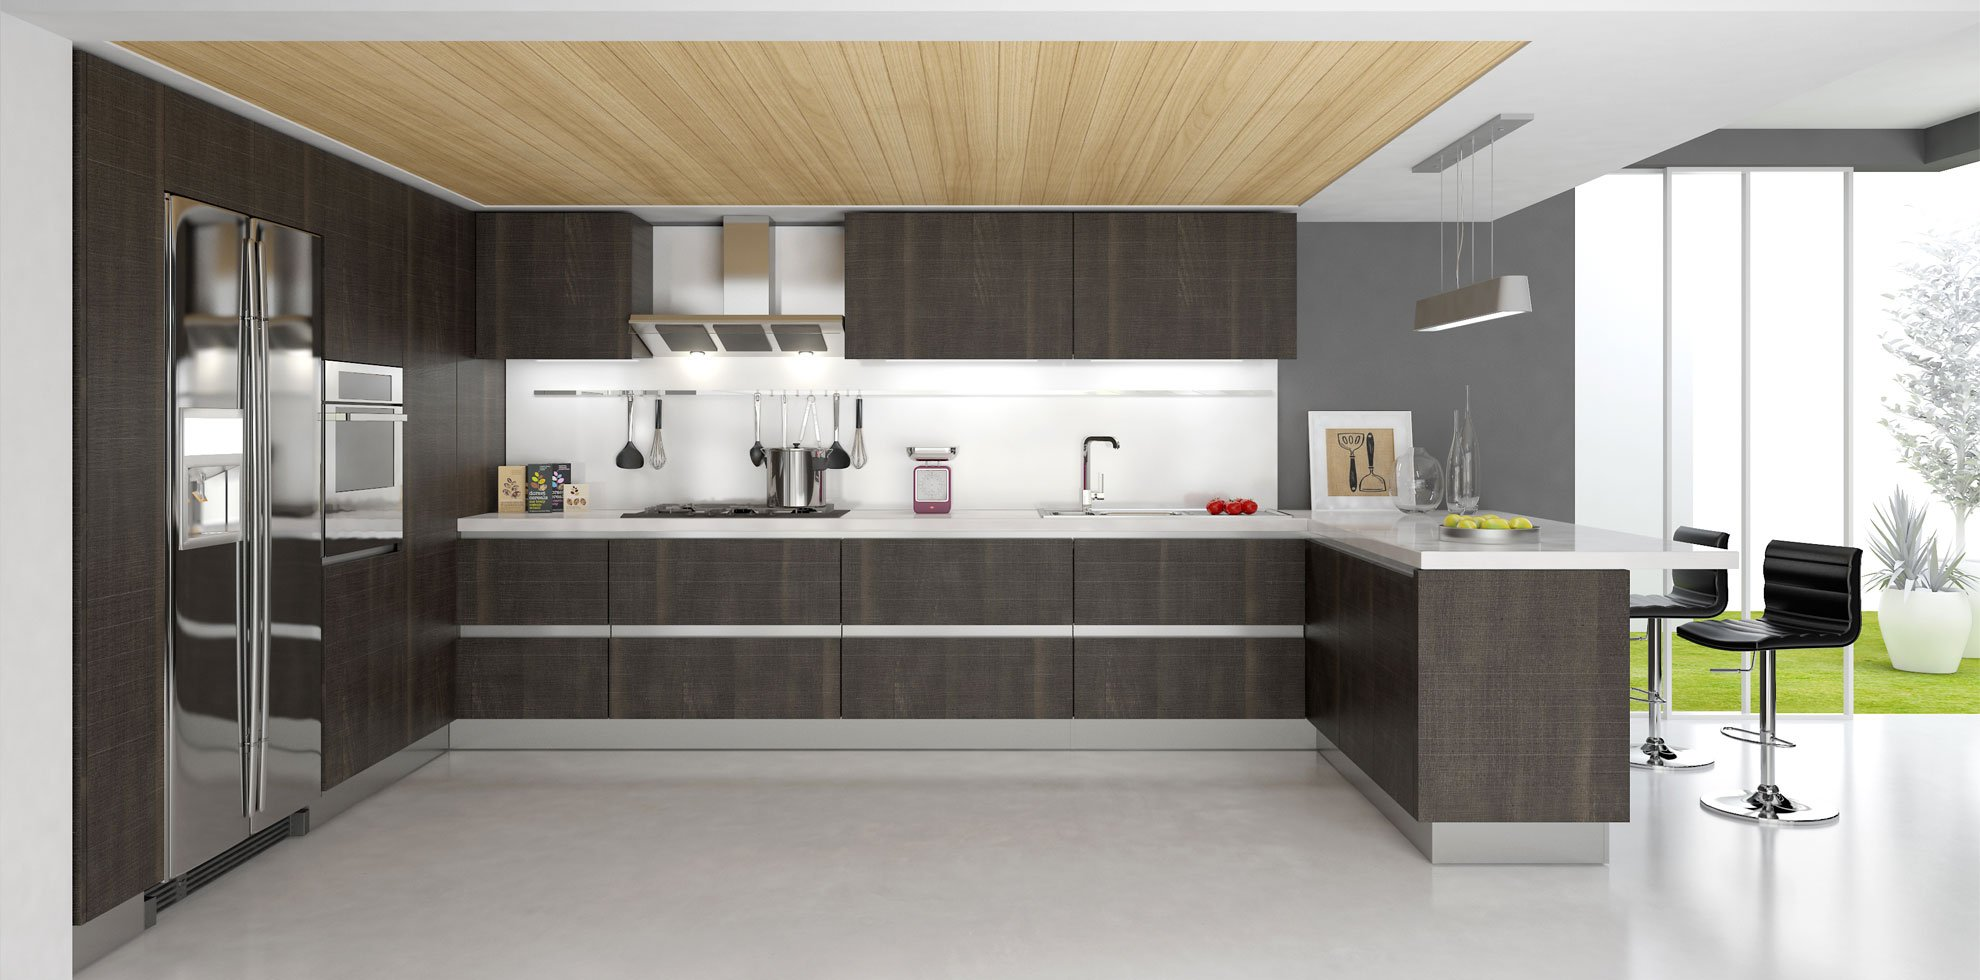 20 prime examples of modern kitchen cabinets for Modern kitchen design aluminium